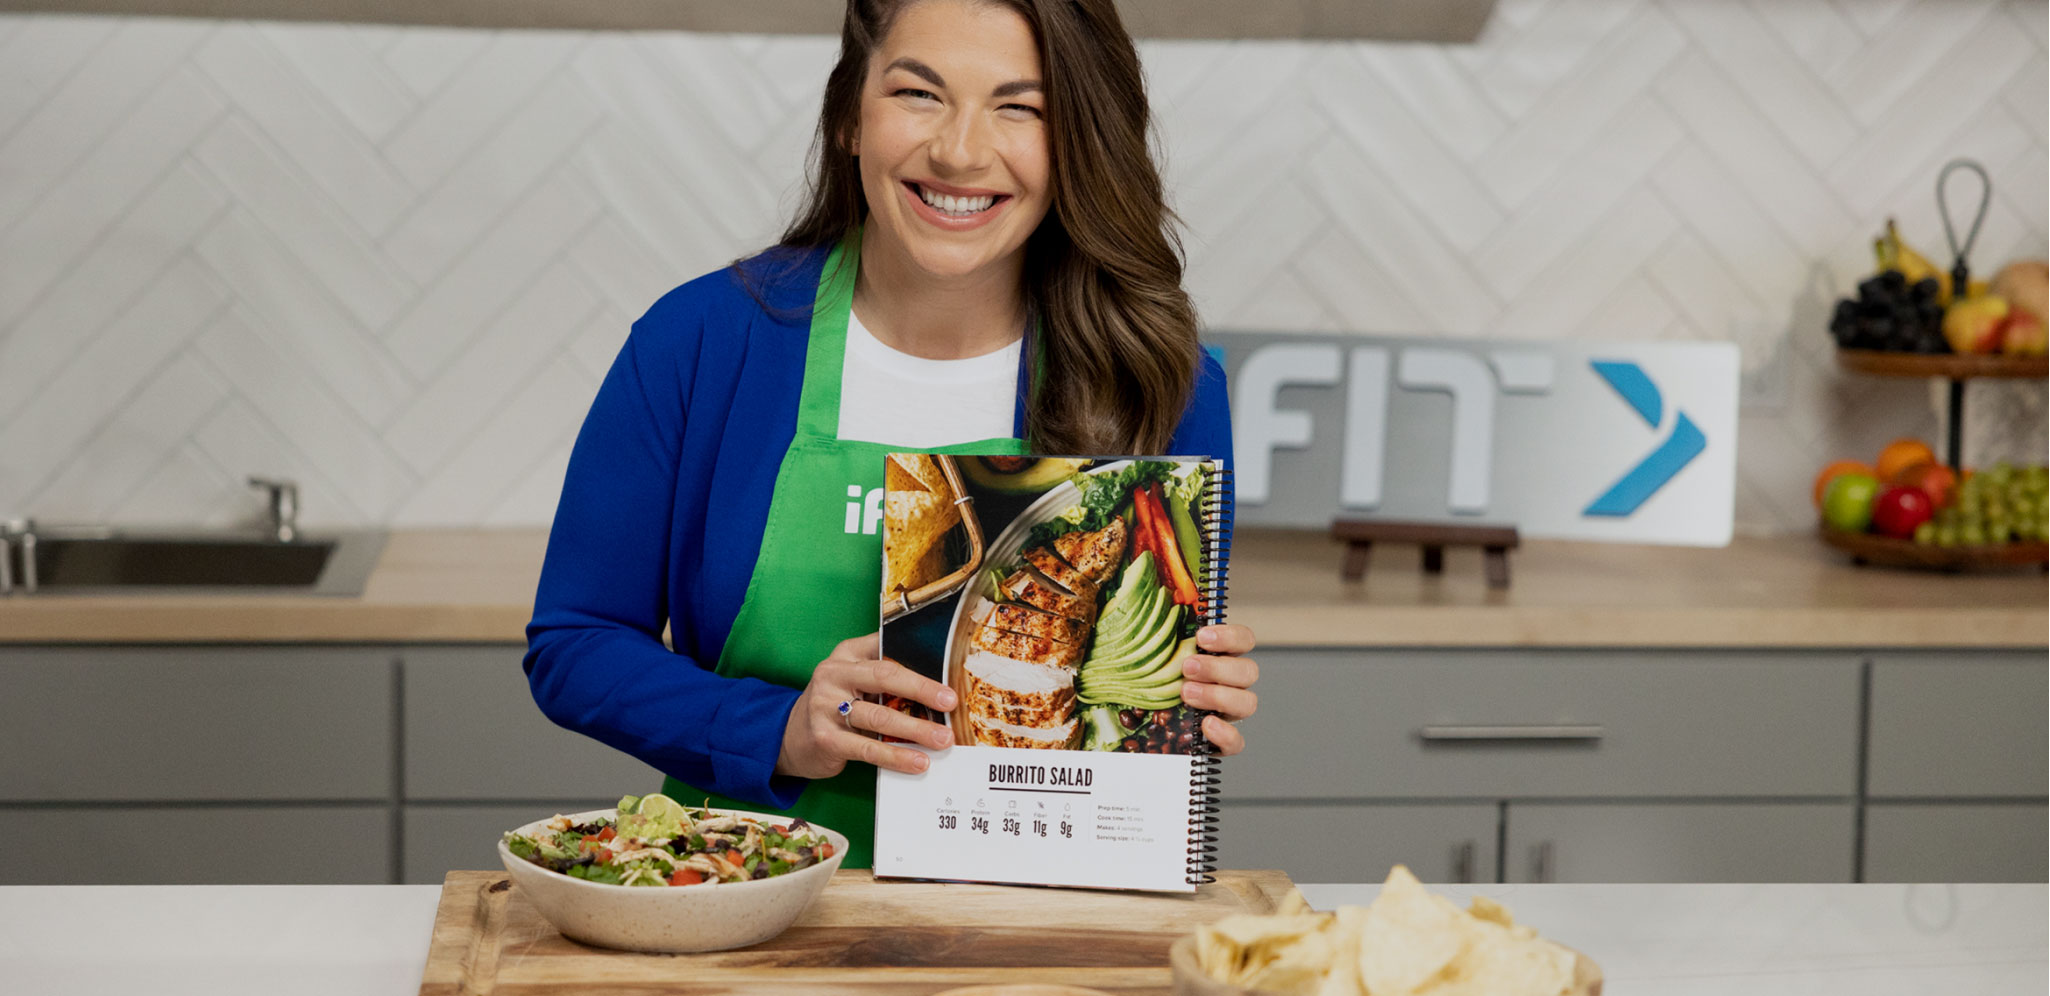 iFIT cooking class